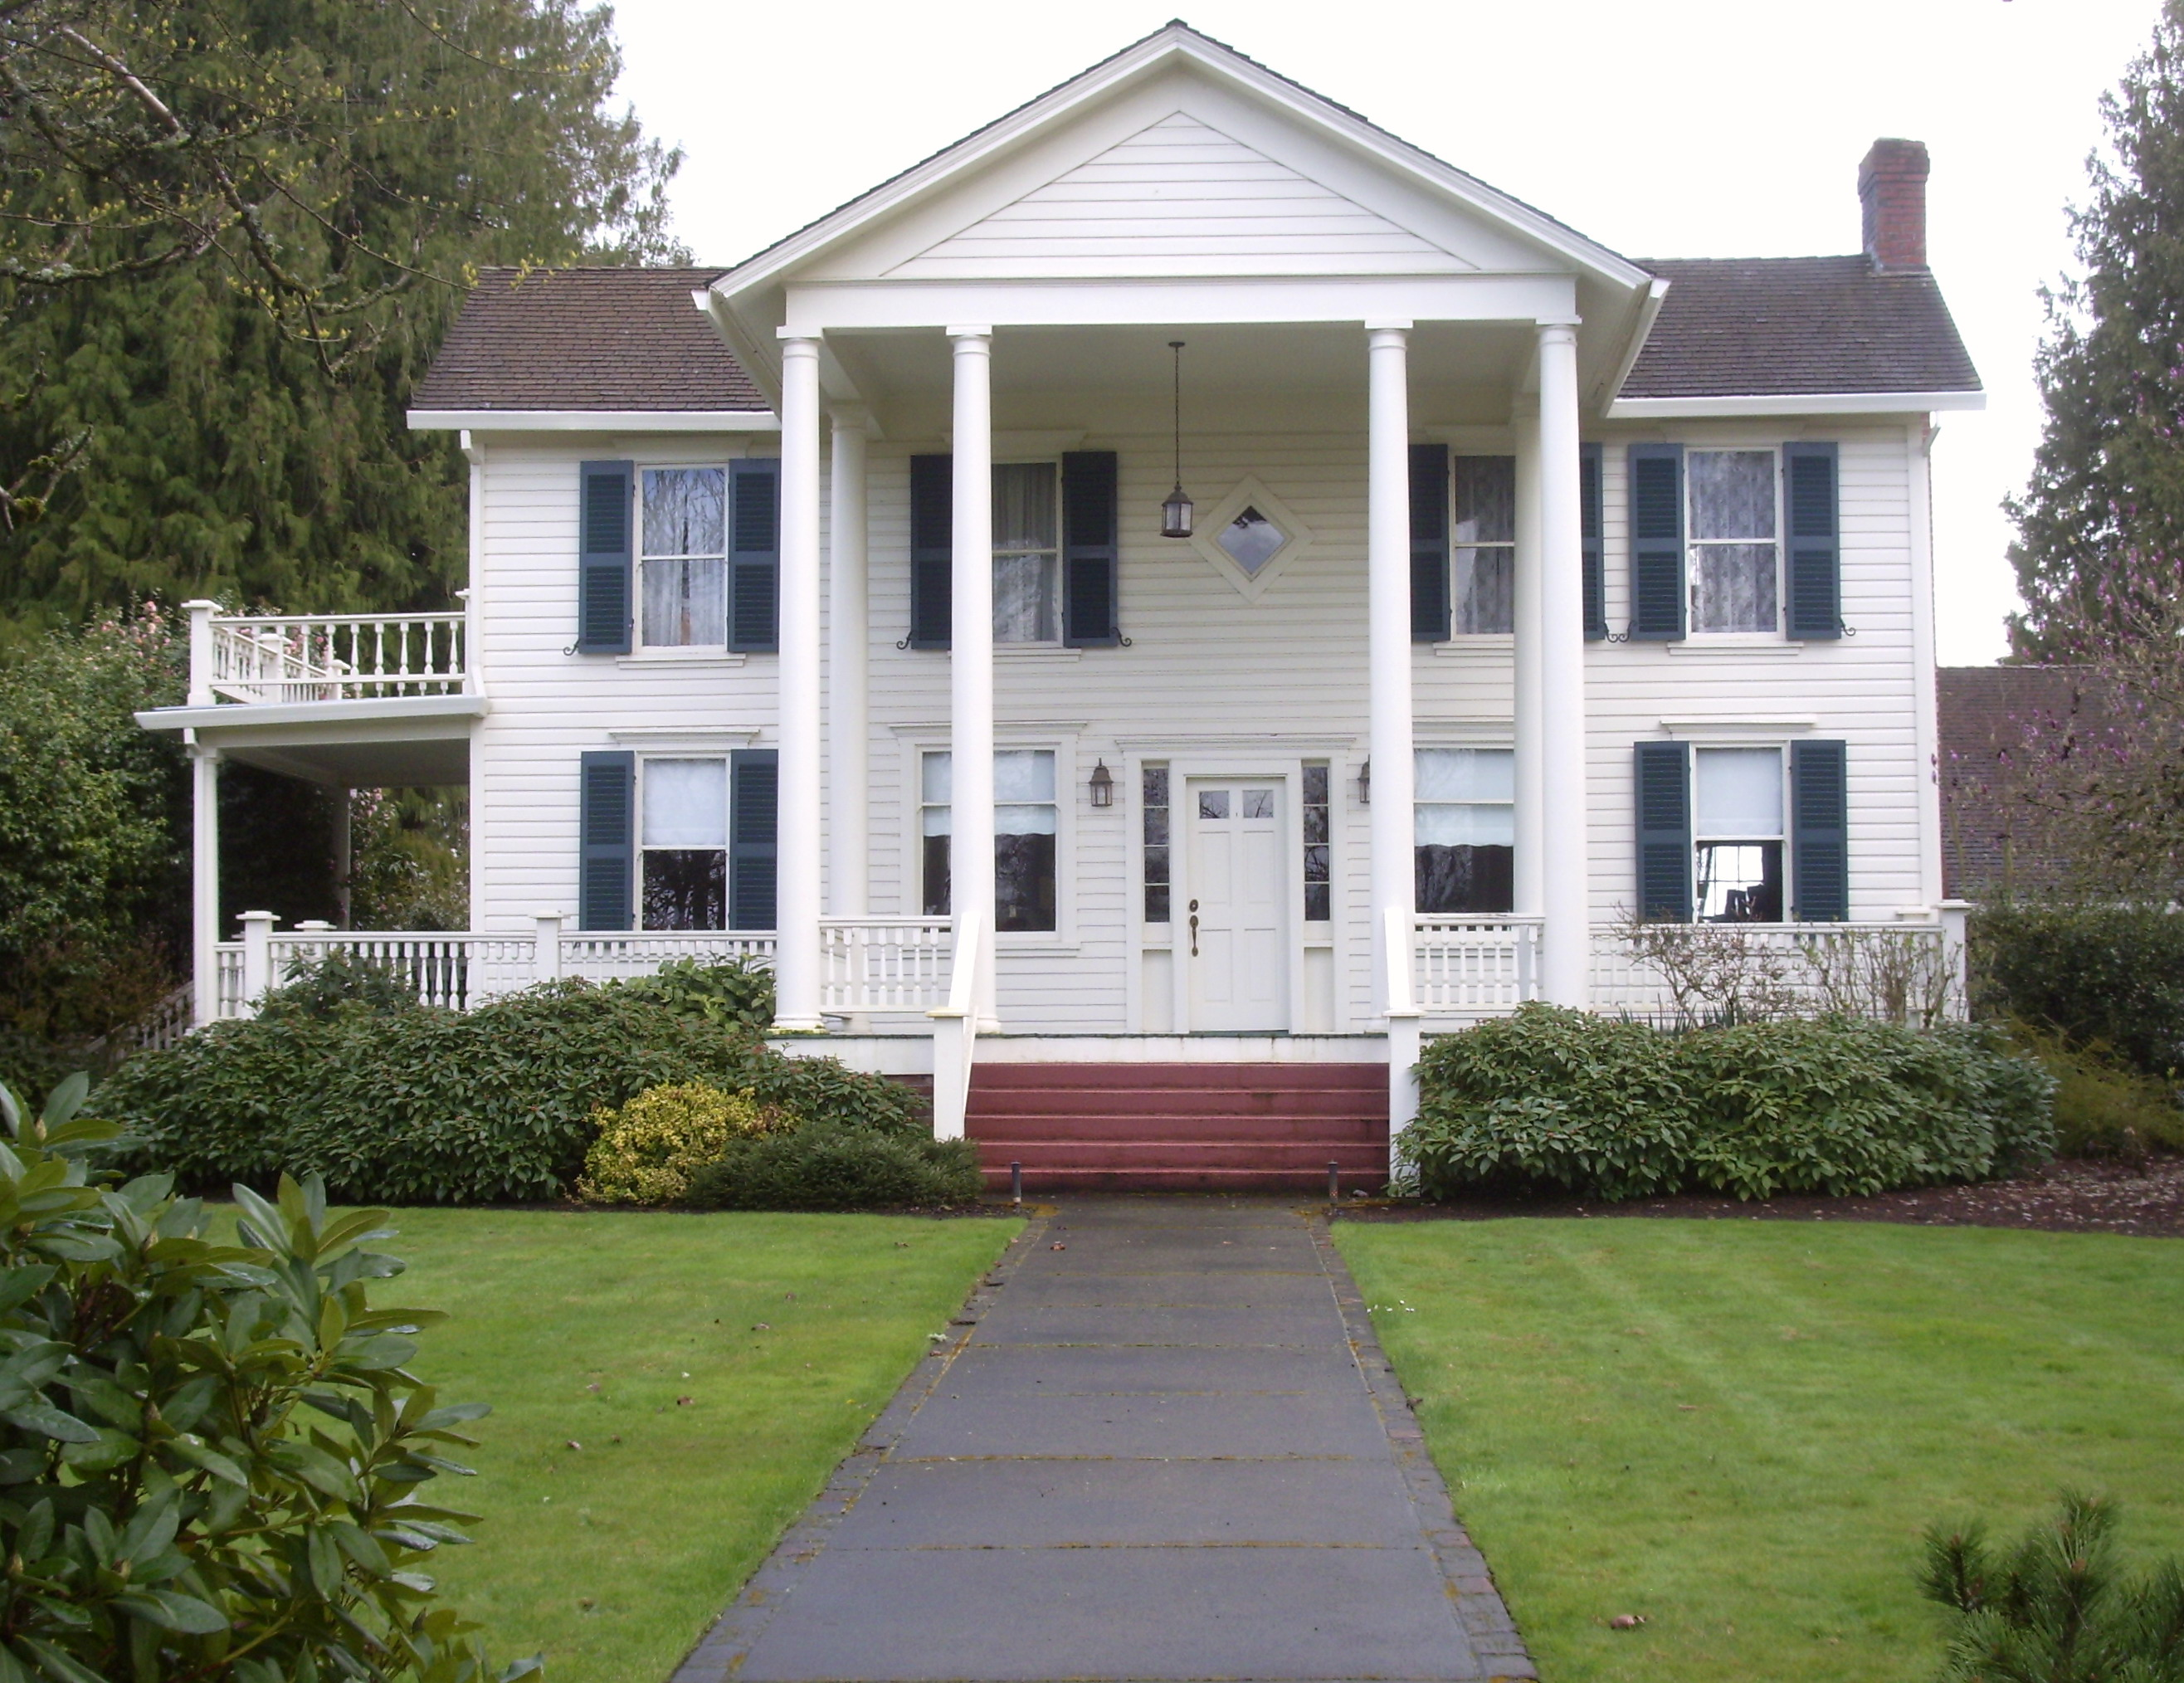 File:Joel Palmer House front P2269.jpeg - Wikimedia Commons